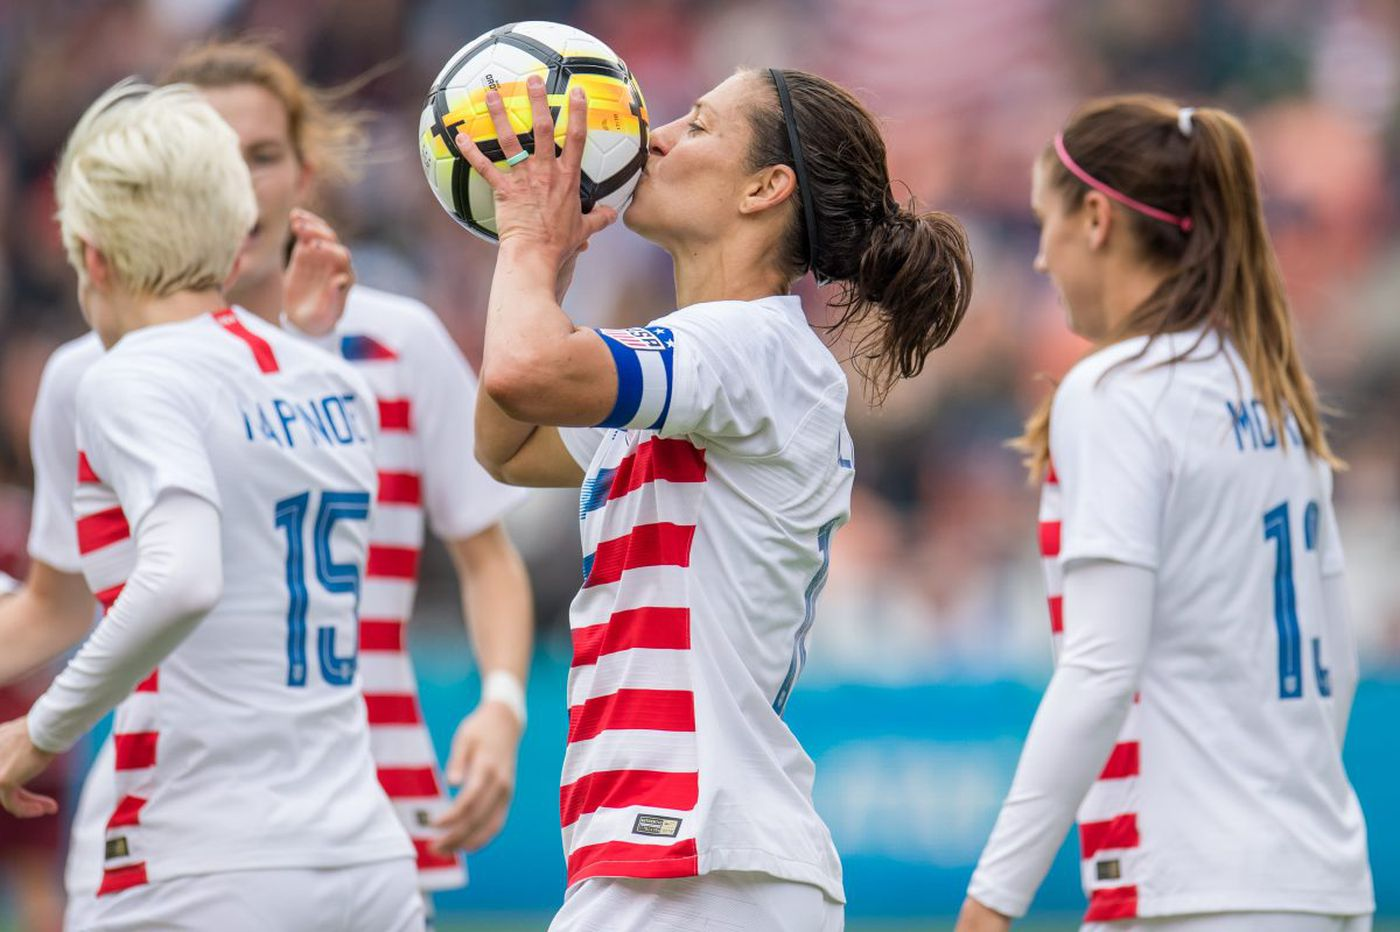 Carli Lloyd scores 100th goal for U.S. women's soccer team in 6-2 win over Mexico